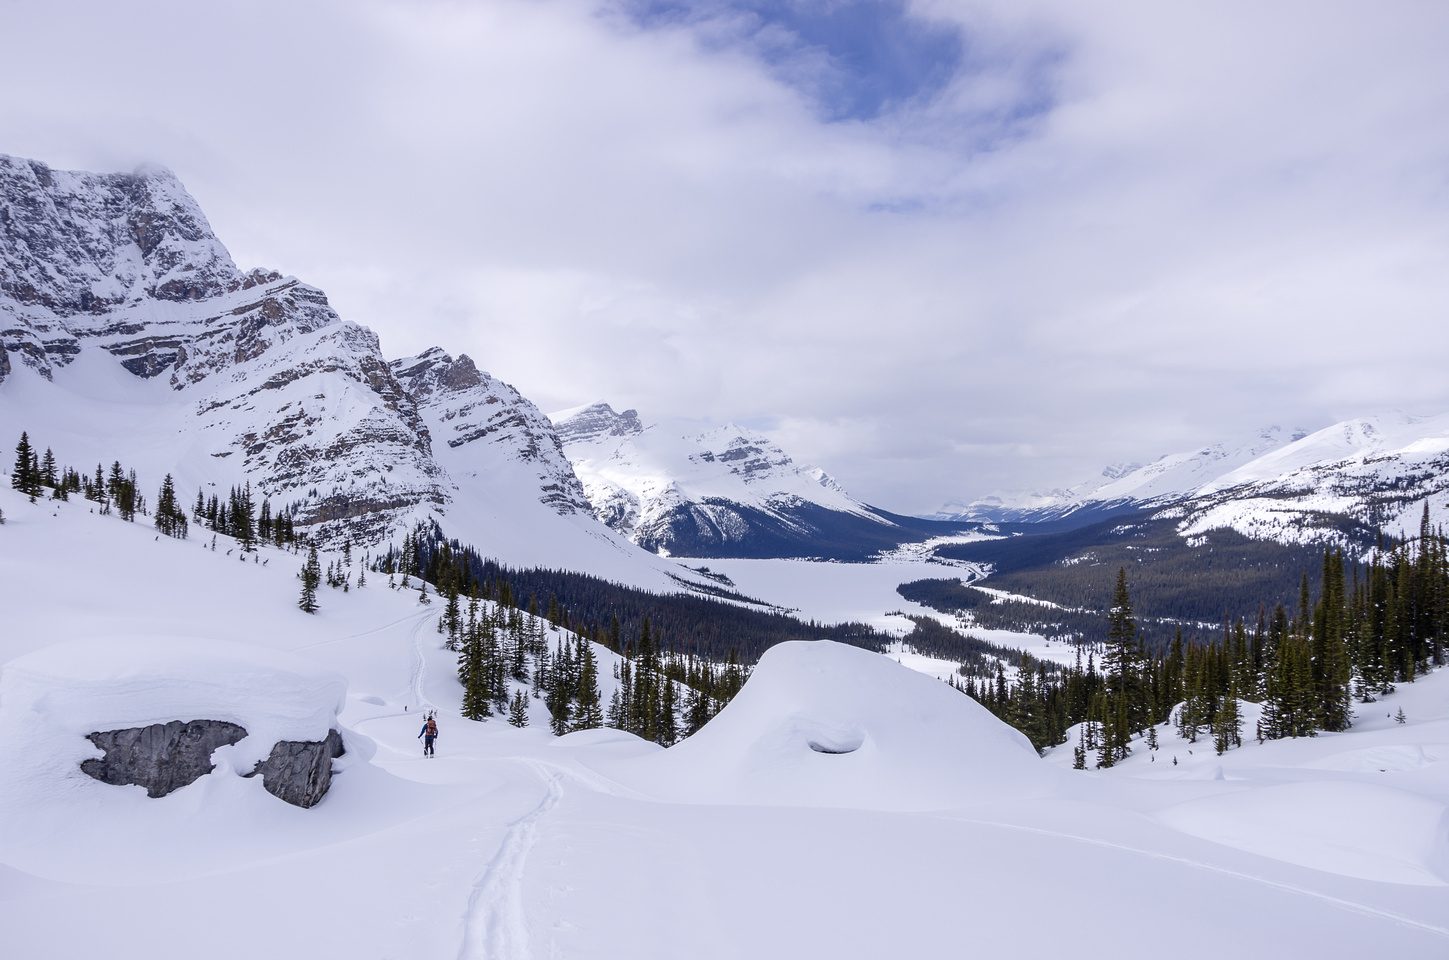 Skiing back down to Bow Lake.